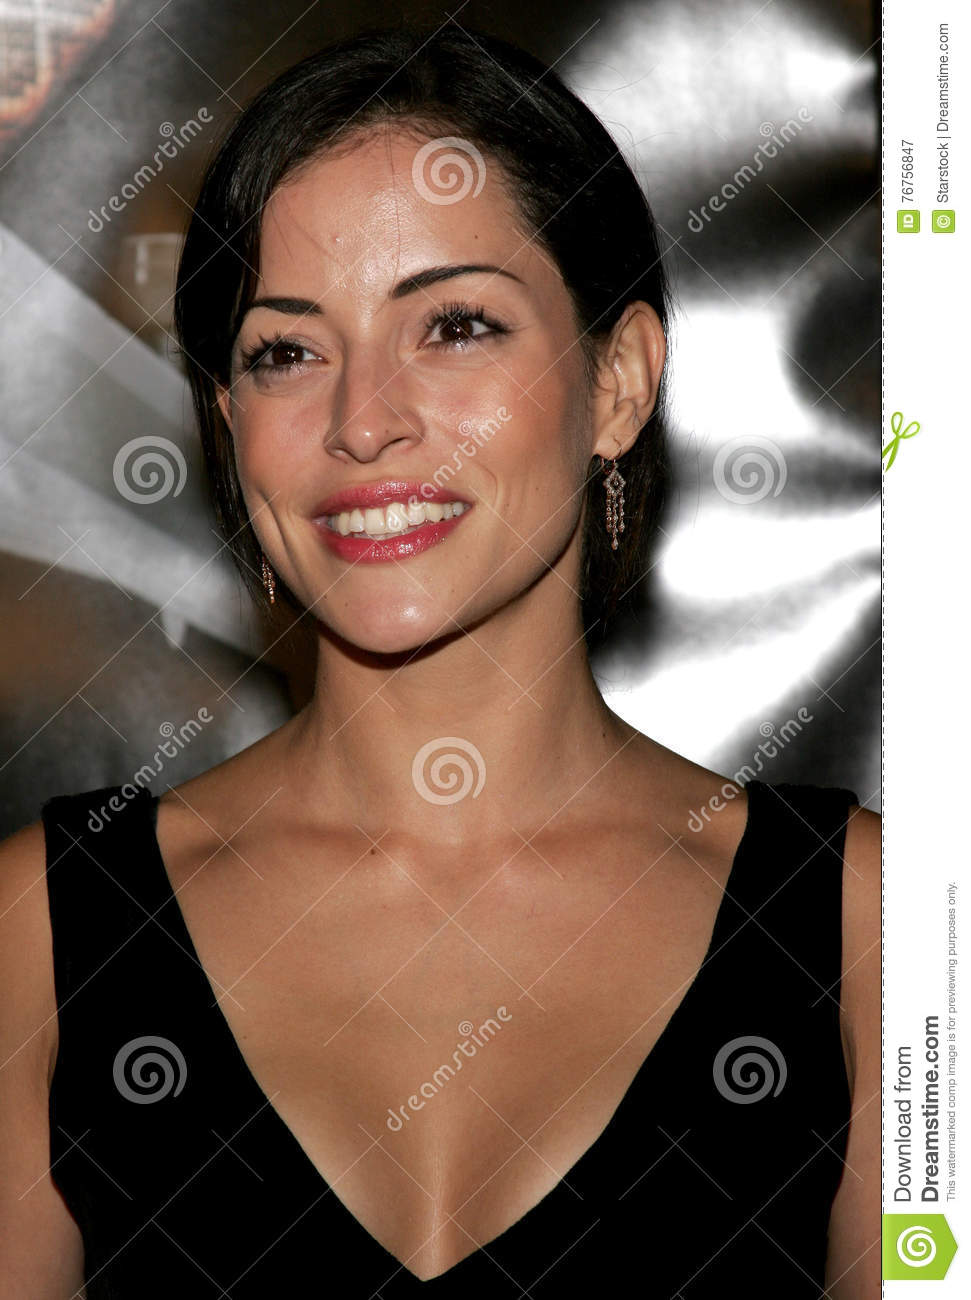 emmanuelle vaugier two and a half